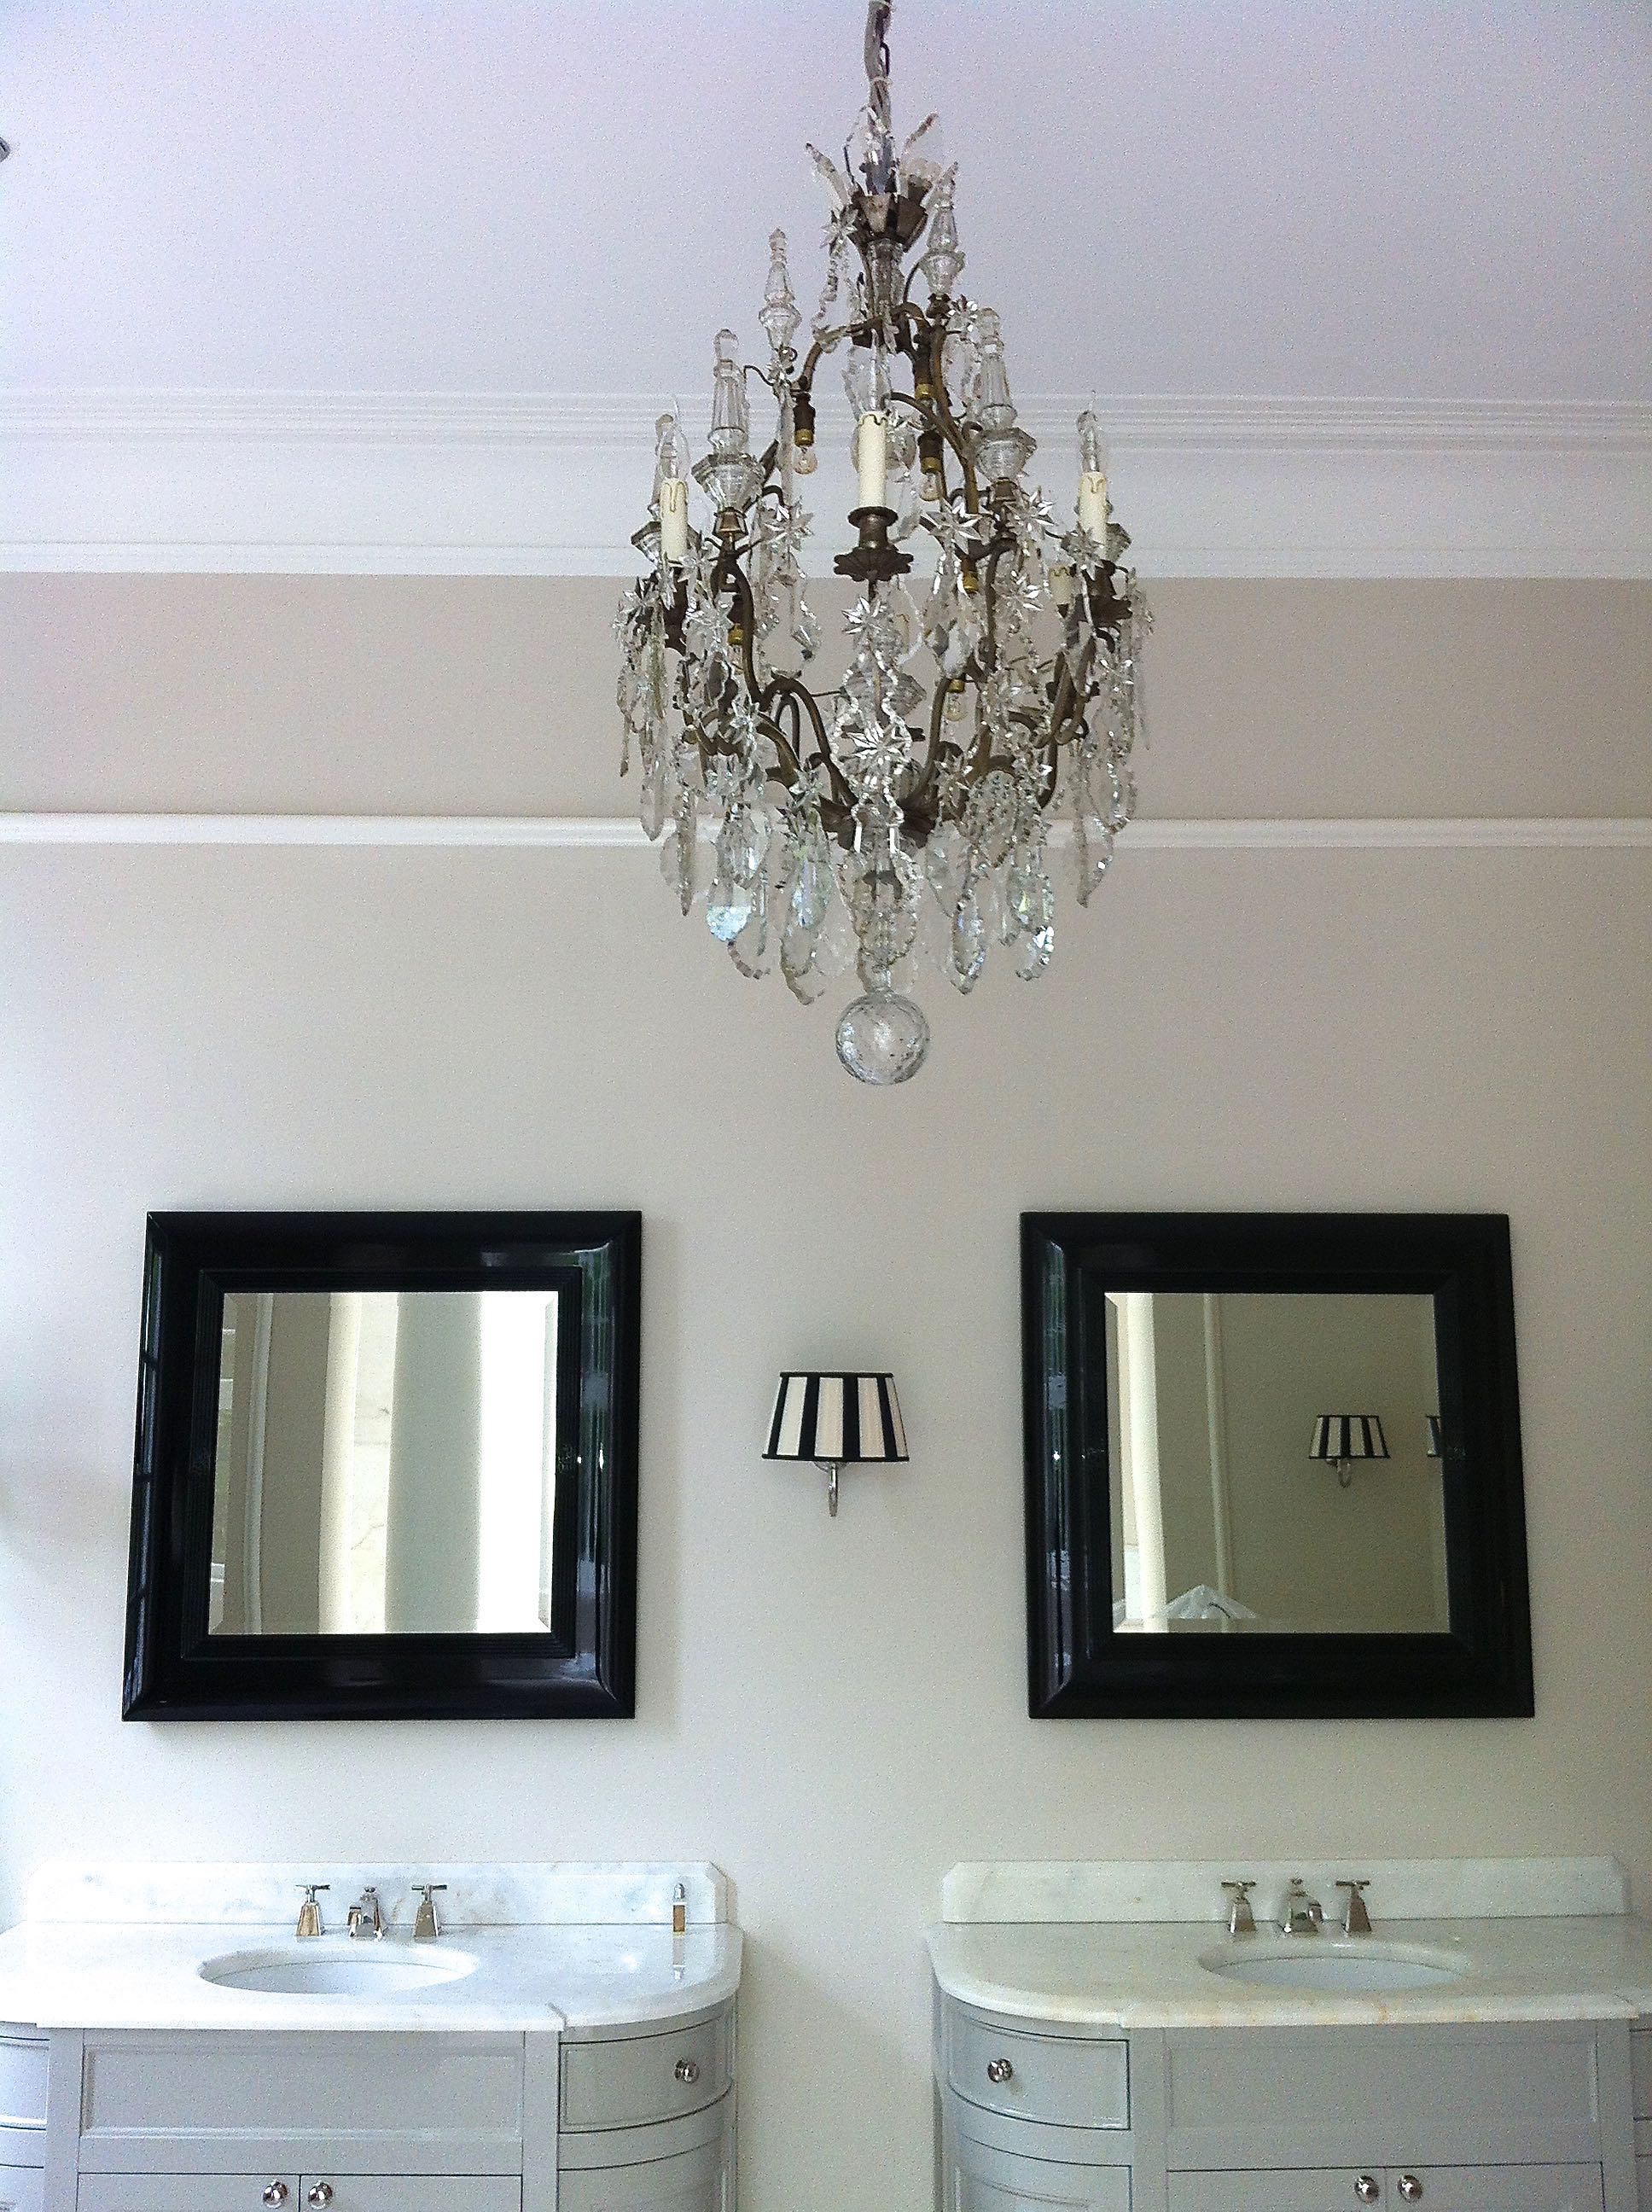 French chandelier in the bathroom